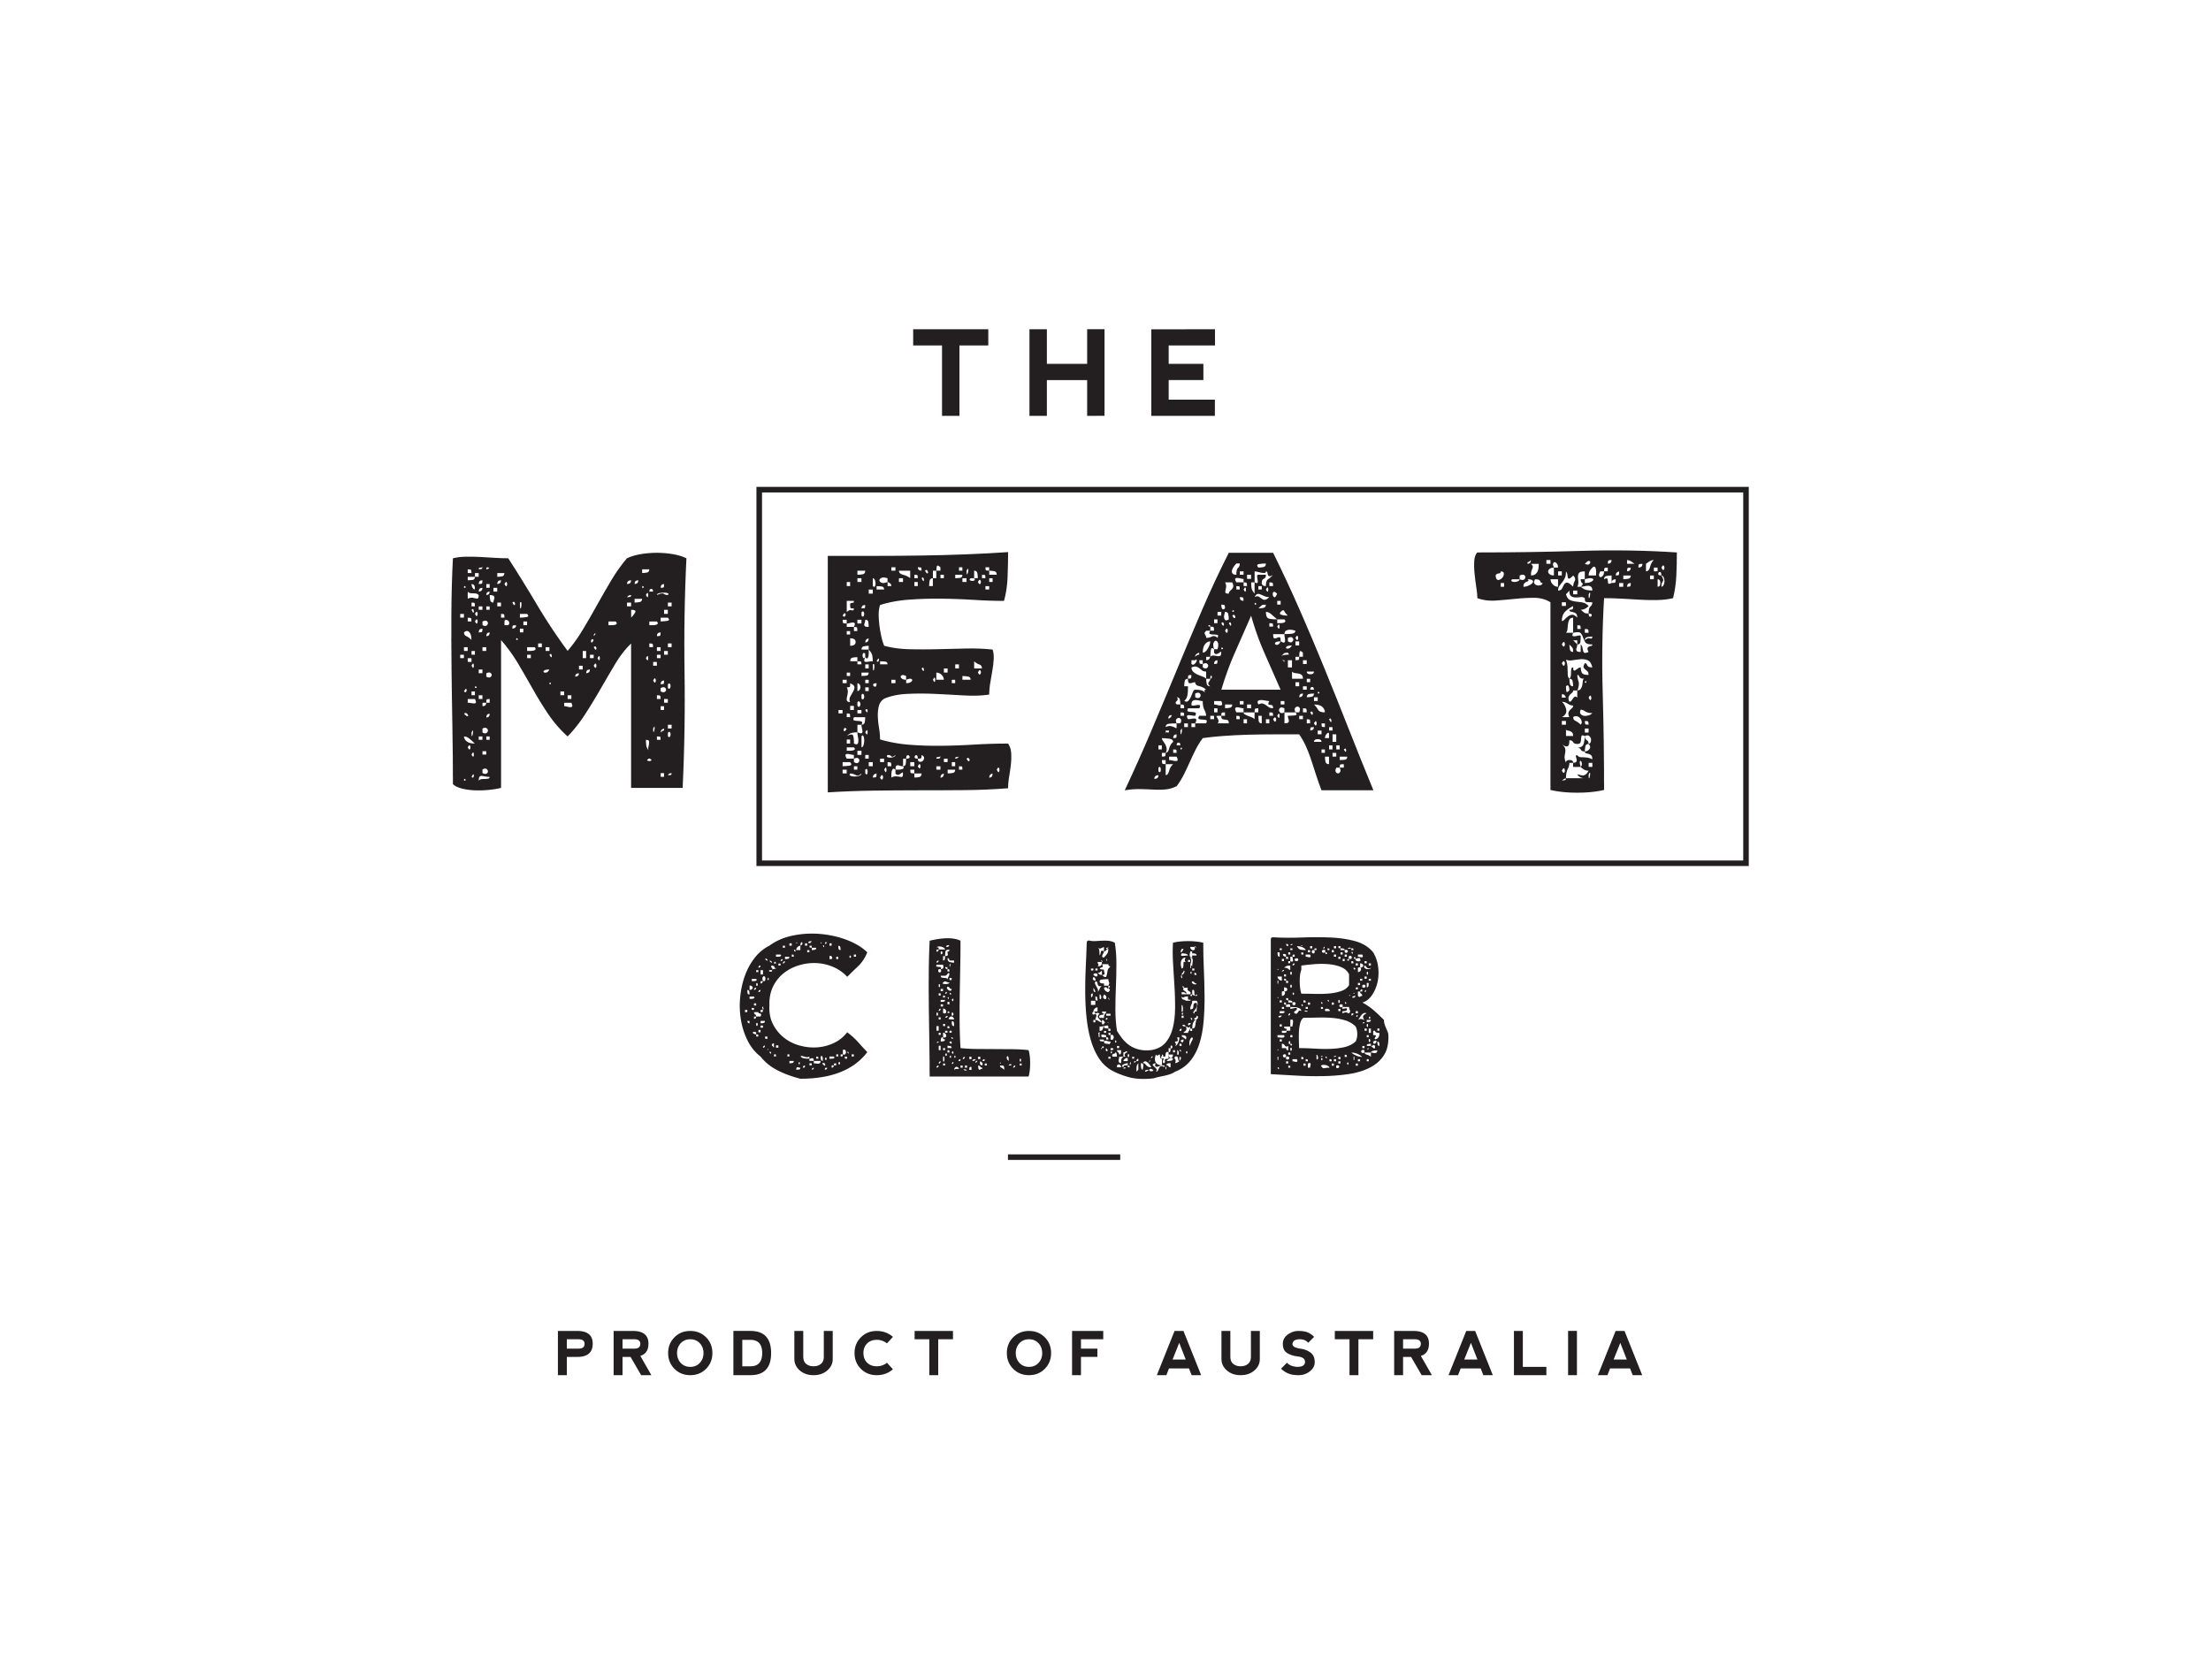 10% off all premium Australian proteins and fine foods. Use code MOMENTUM10 on checkout to redeem.   The online store The Meat Club,serves up a stunning array of high quality Australian products, ranging from beef, lamb, chicken, pork, sausages,bacon, fish & now fruit & veggies. All products are air freighted into Singapore with home delivery. You can order one off or subscribe where a delivery arrives every 4 weeks.